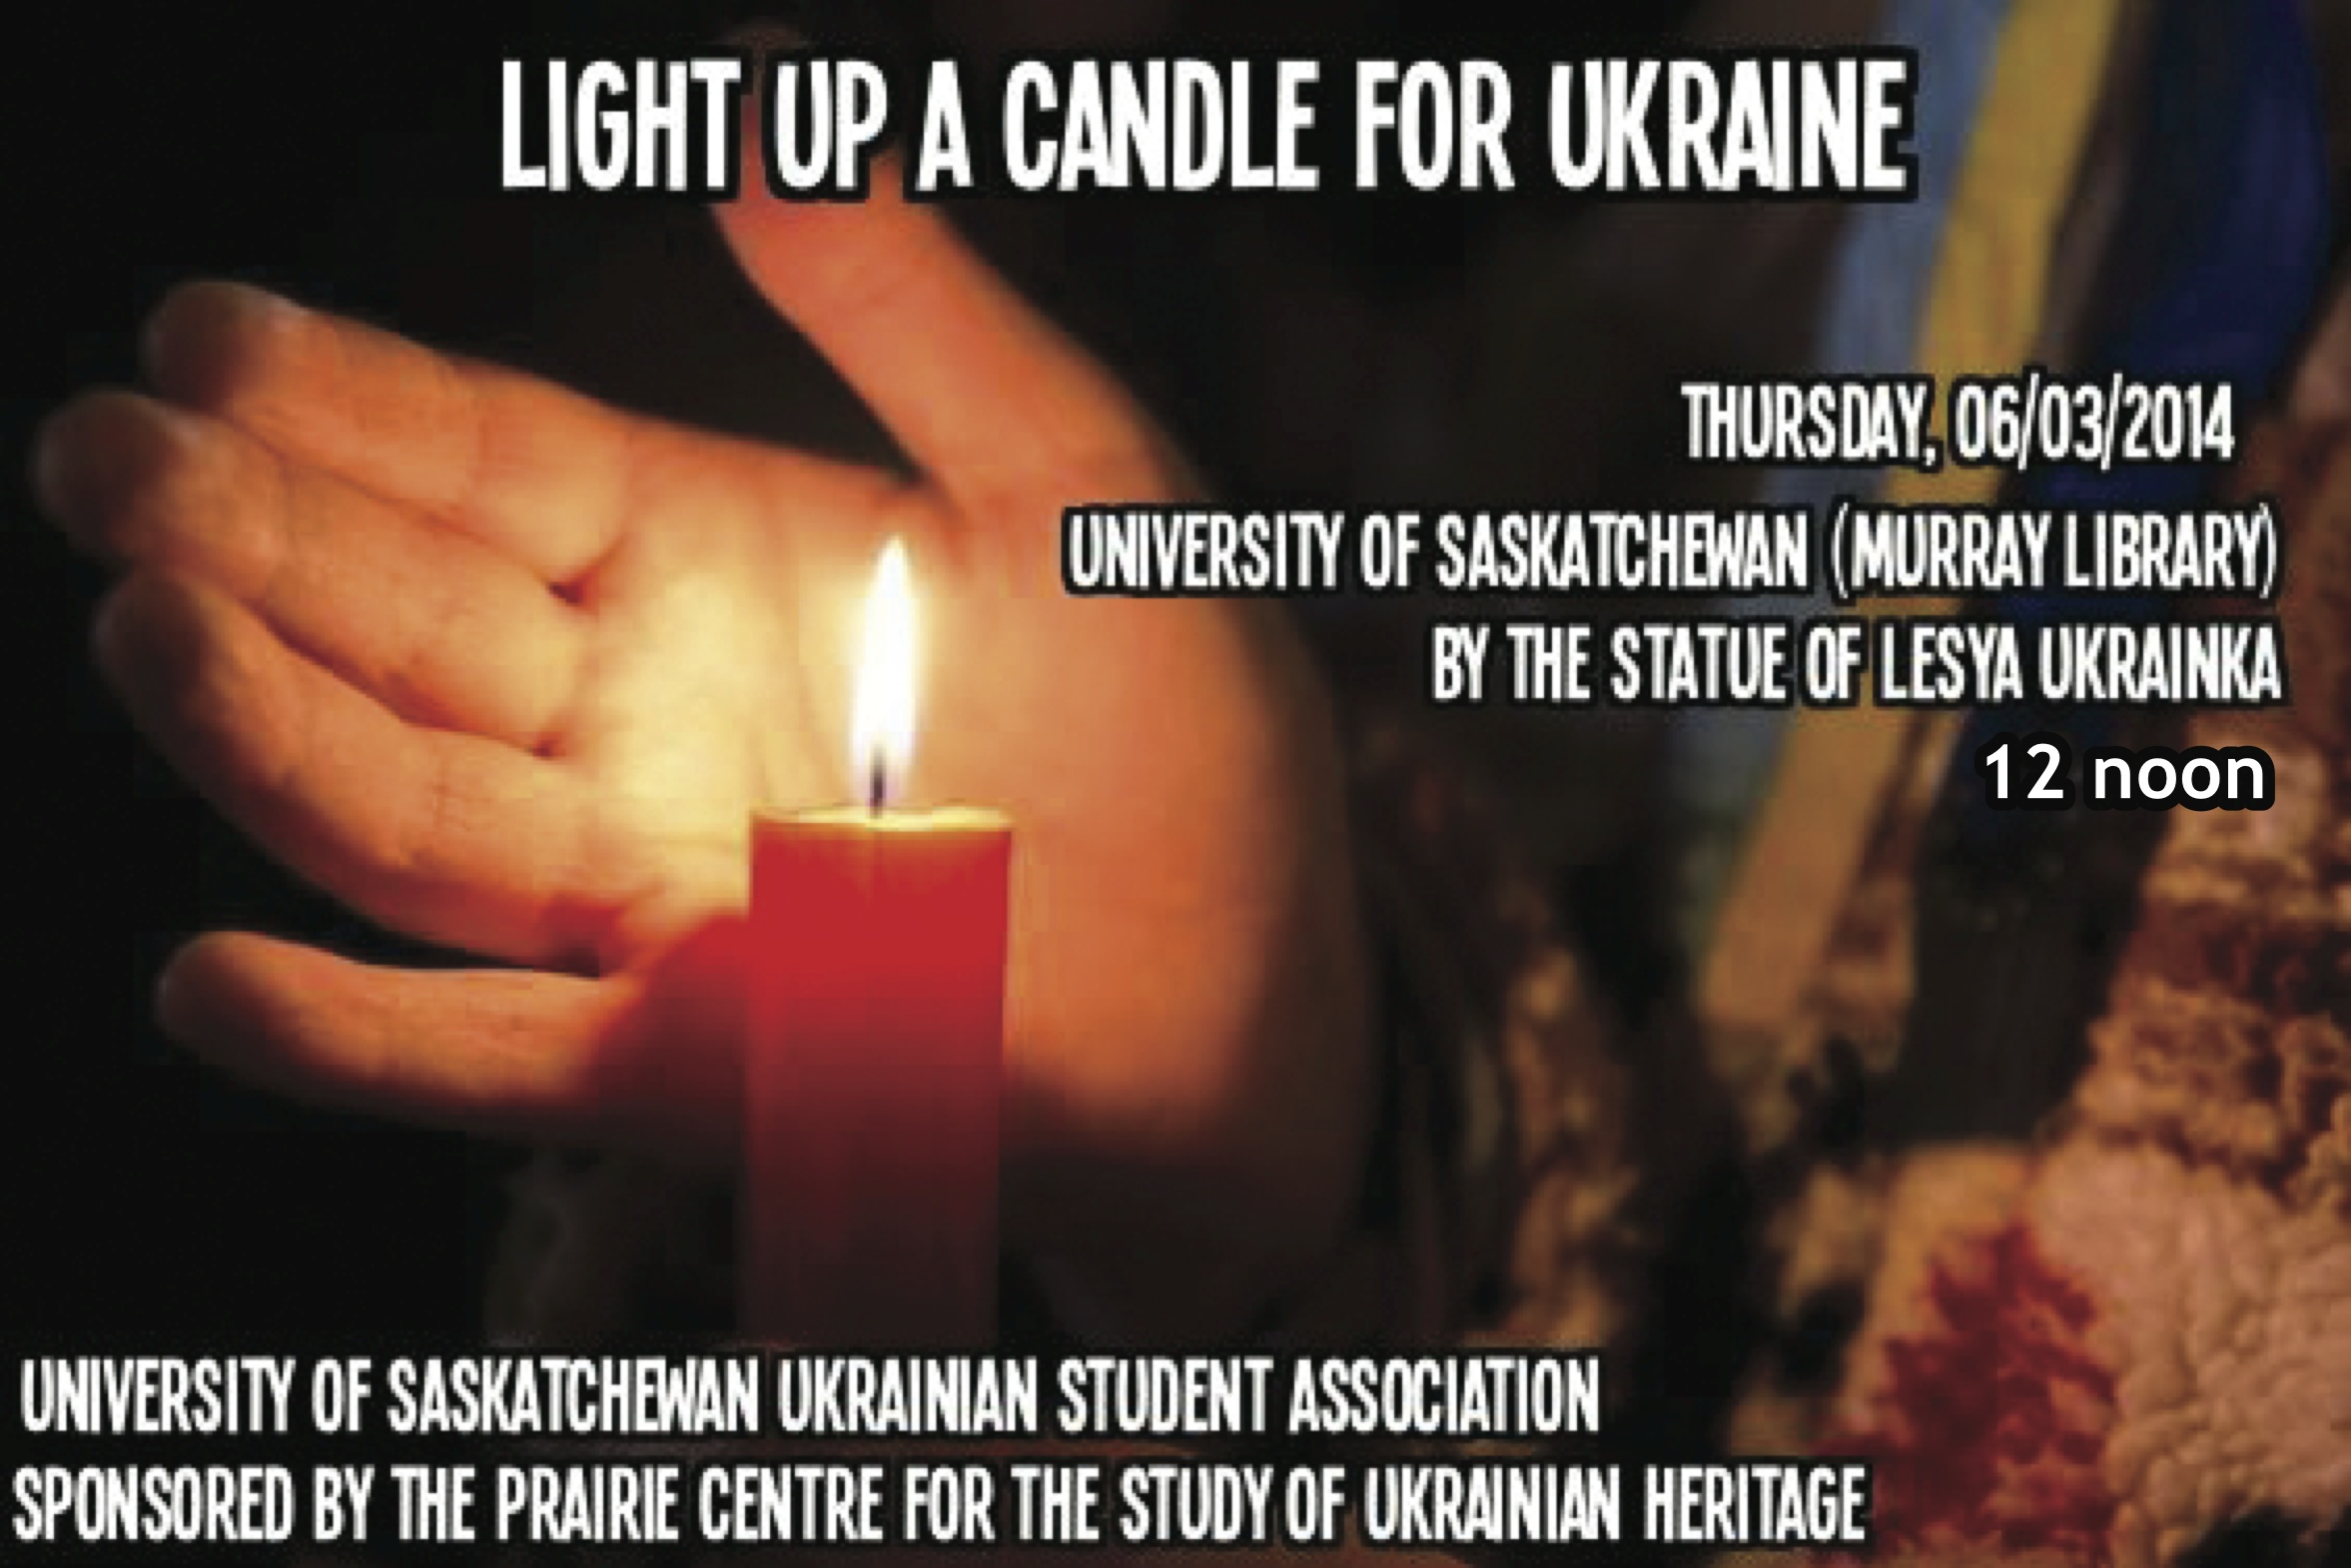 USUSA candlelight ceremony for Ukraine